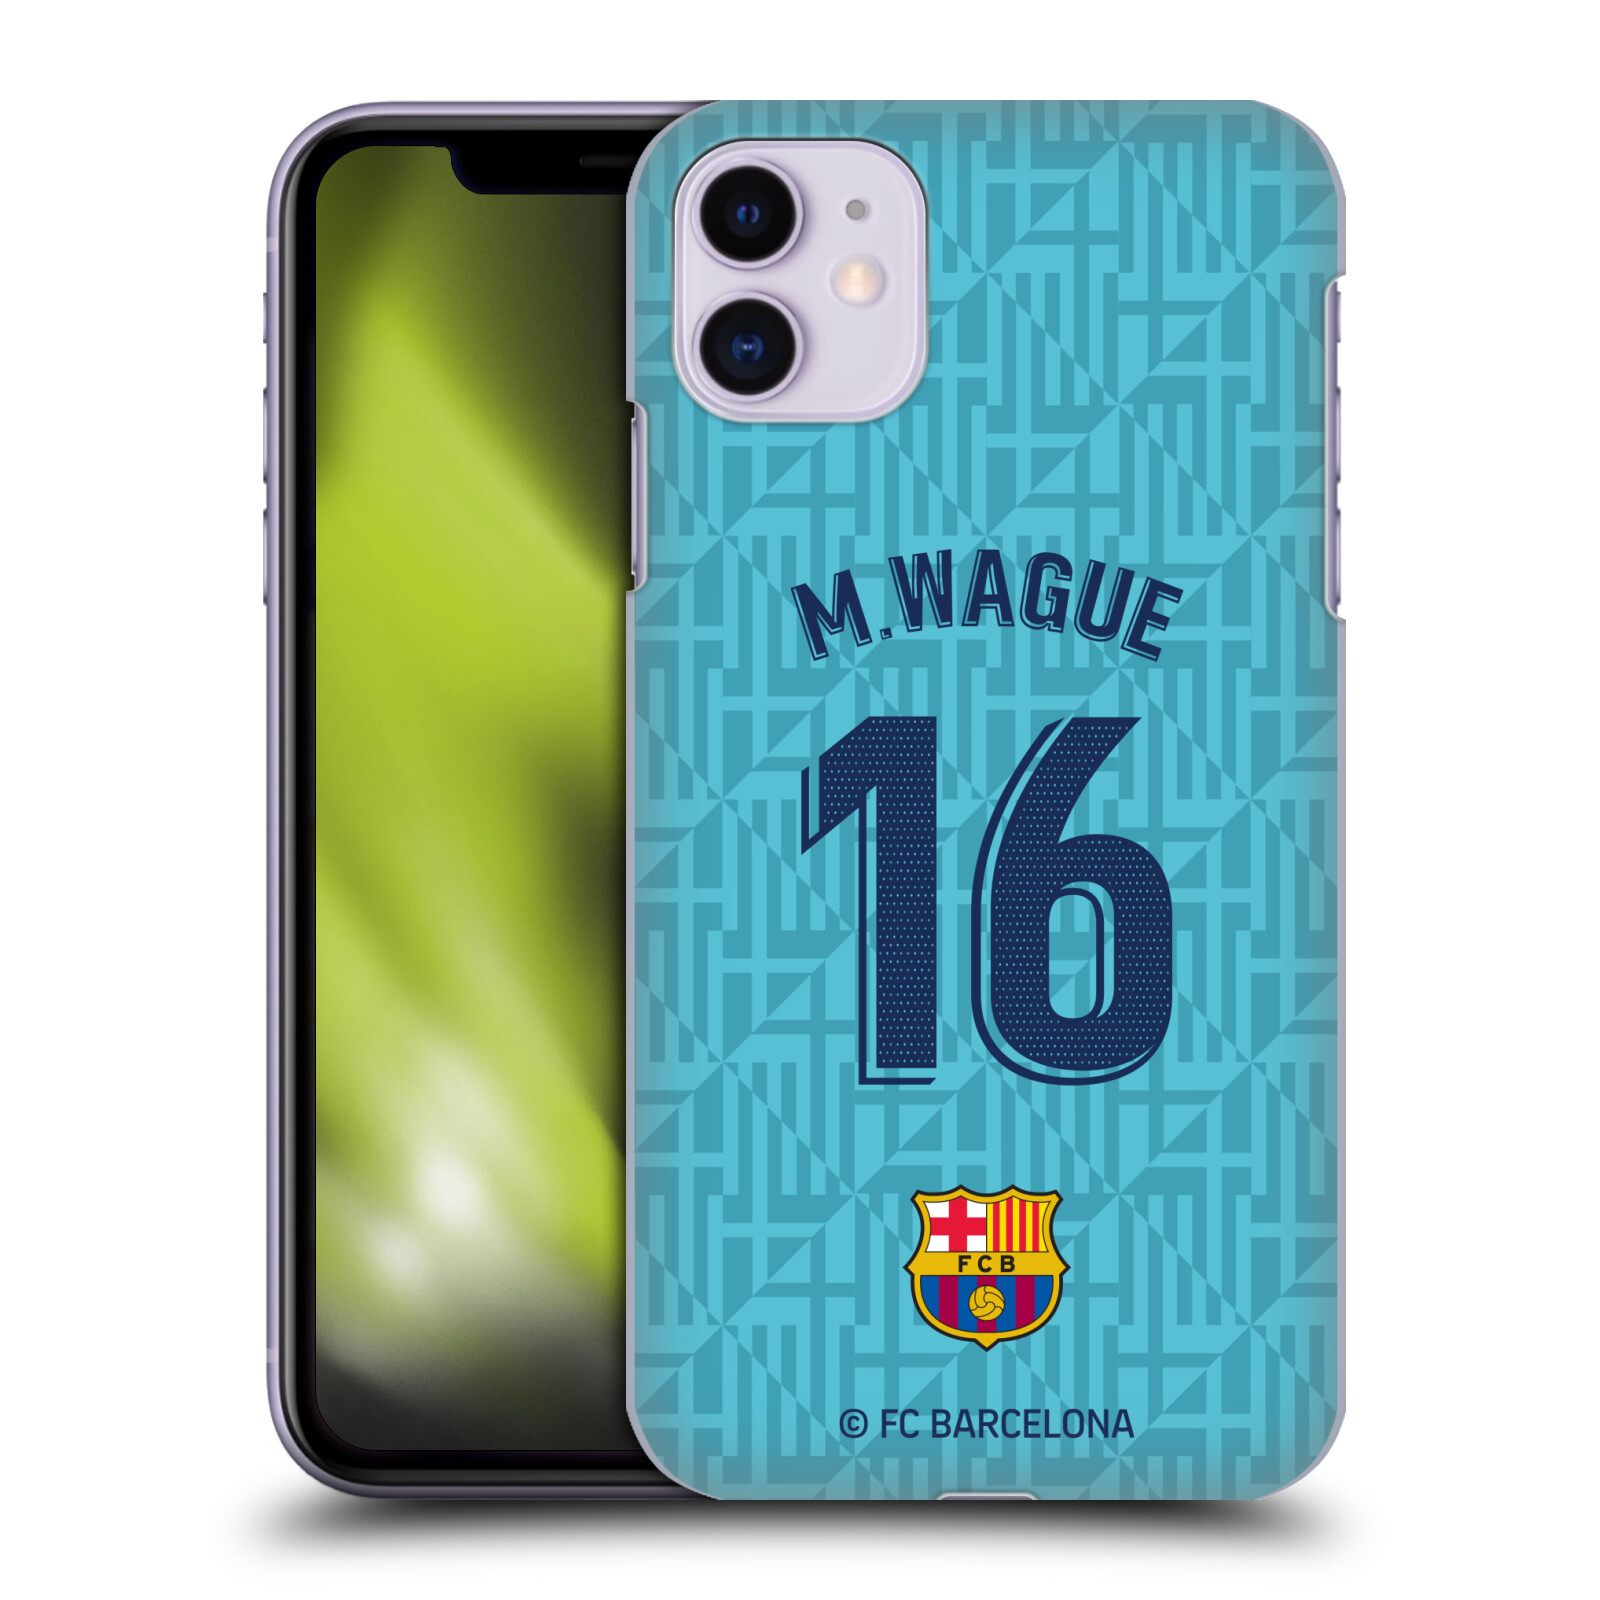 Official FC Barcelona 2019/20 Players Third Kit Group 2 Moussa Wague Case for Apple iPhone 11